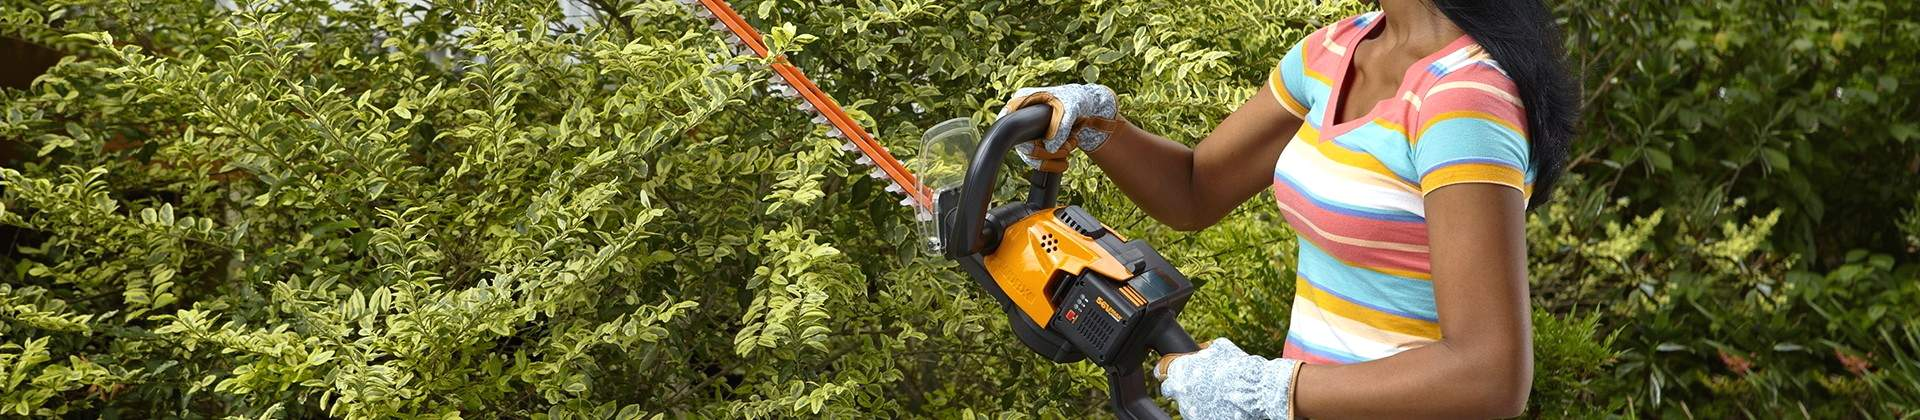 8 Best Cordless Hedge Trimmers – No Limitations